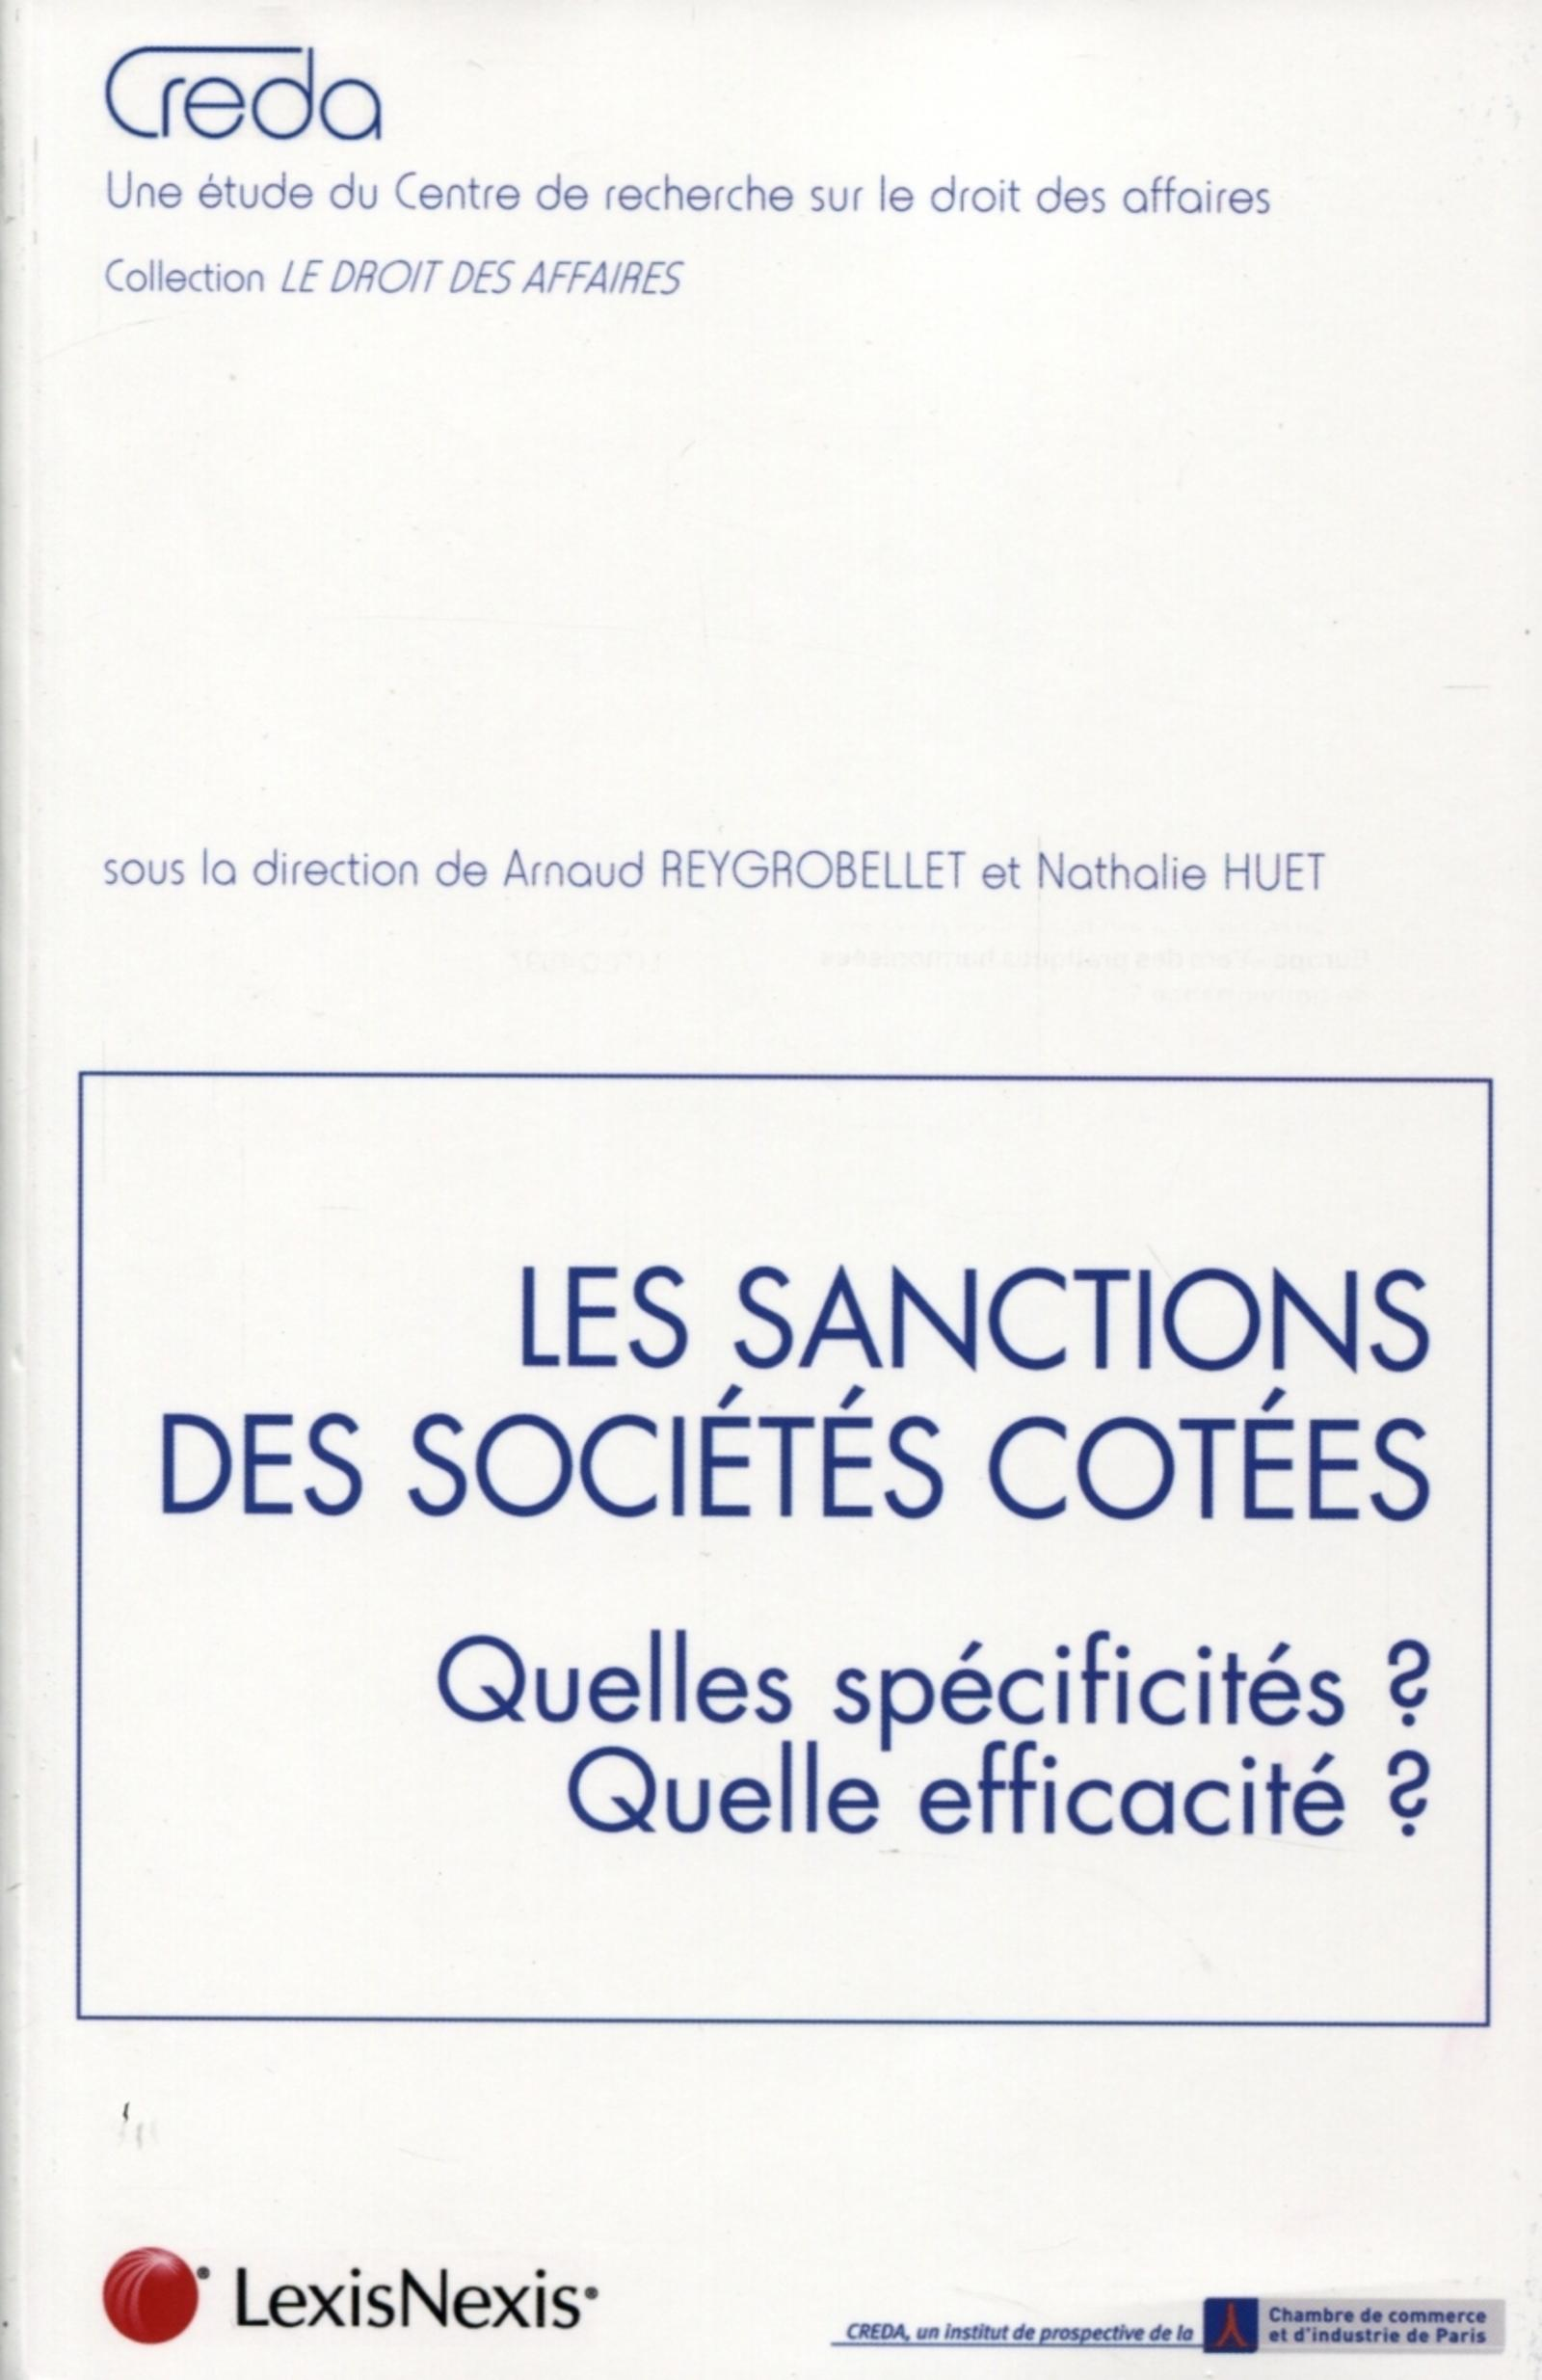 LES SANCTIONS DES SOCIETES COTEES - QUELLES SPECIFICITES ? QUELLE EFFICACITE ?